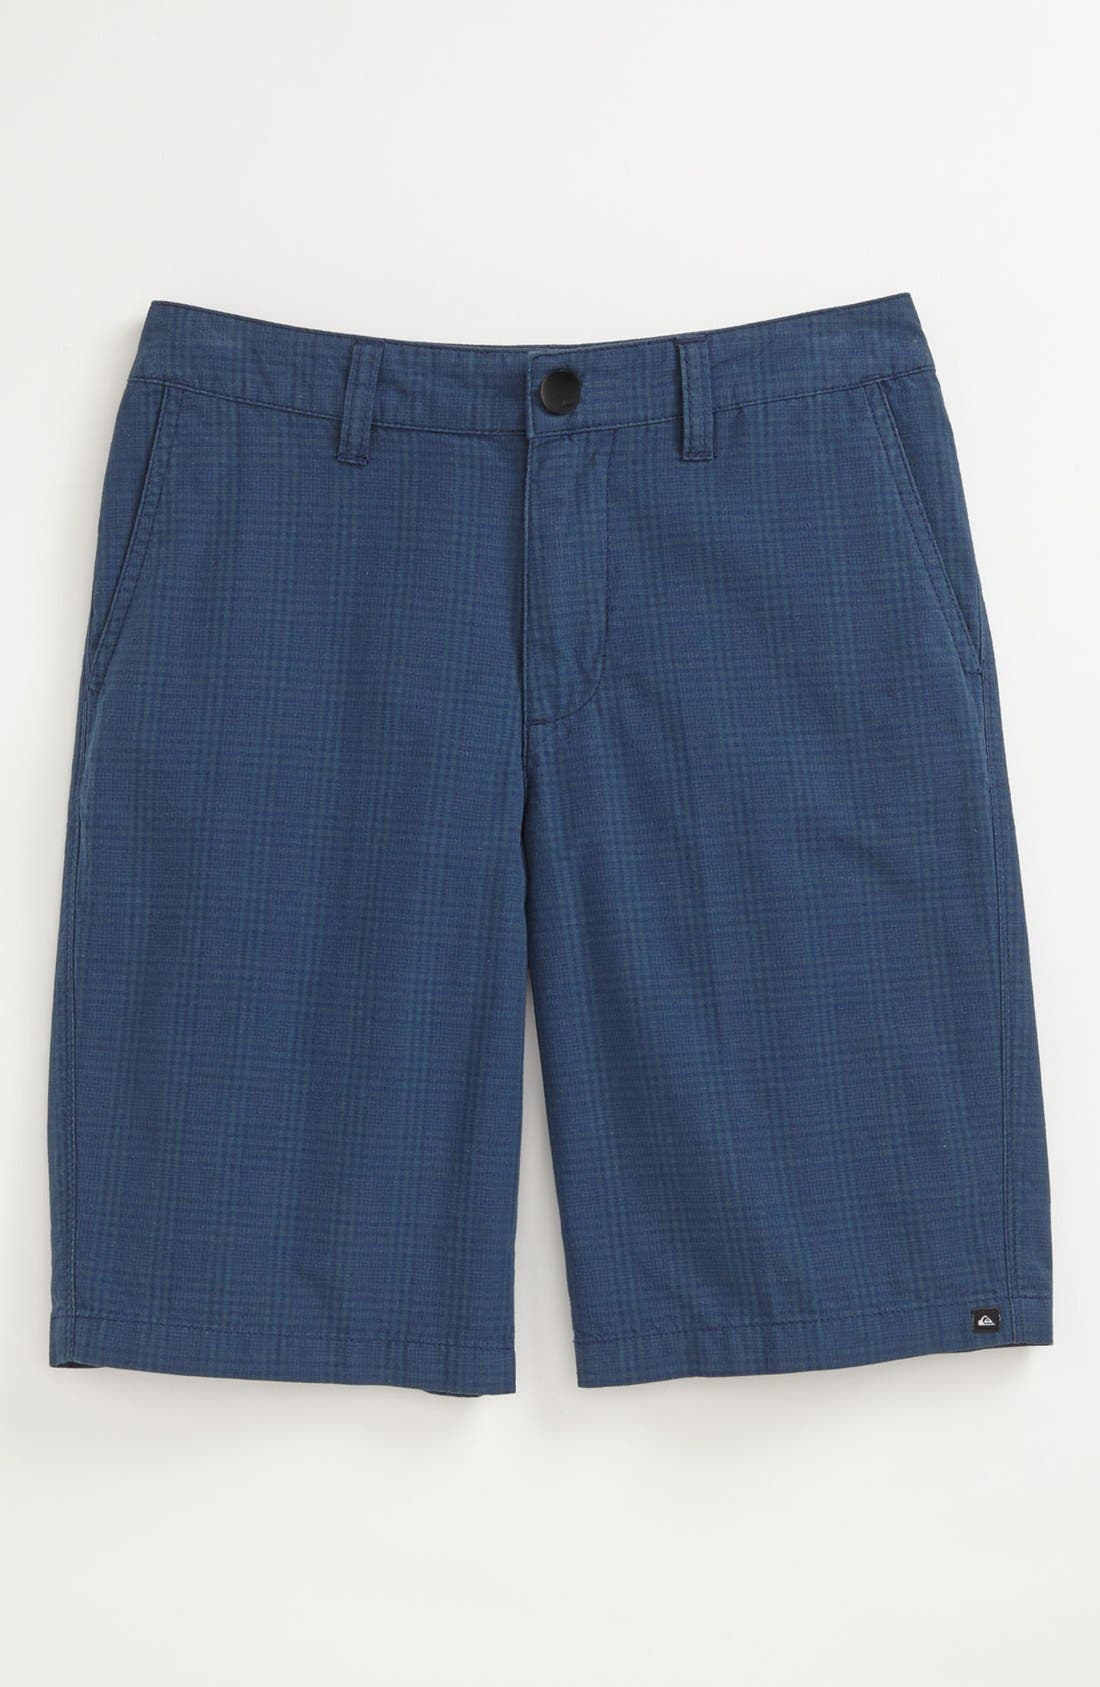 Alternate Image 1 Selected - Quiksilver 'Agenda' Shorts (Little Boys) (Online Only)